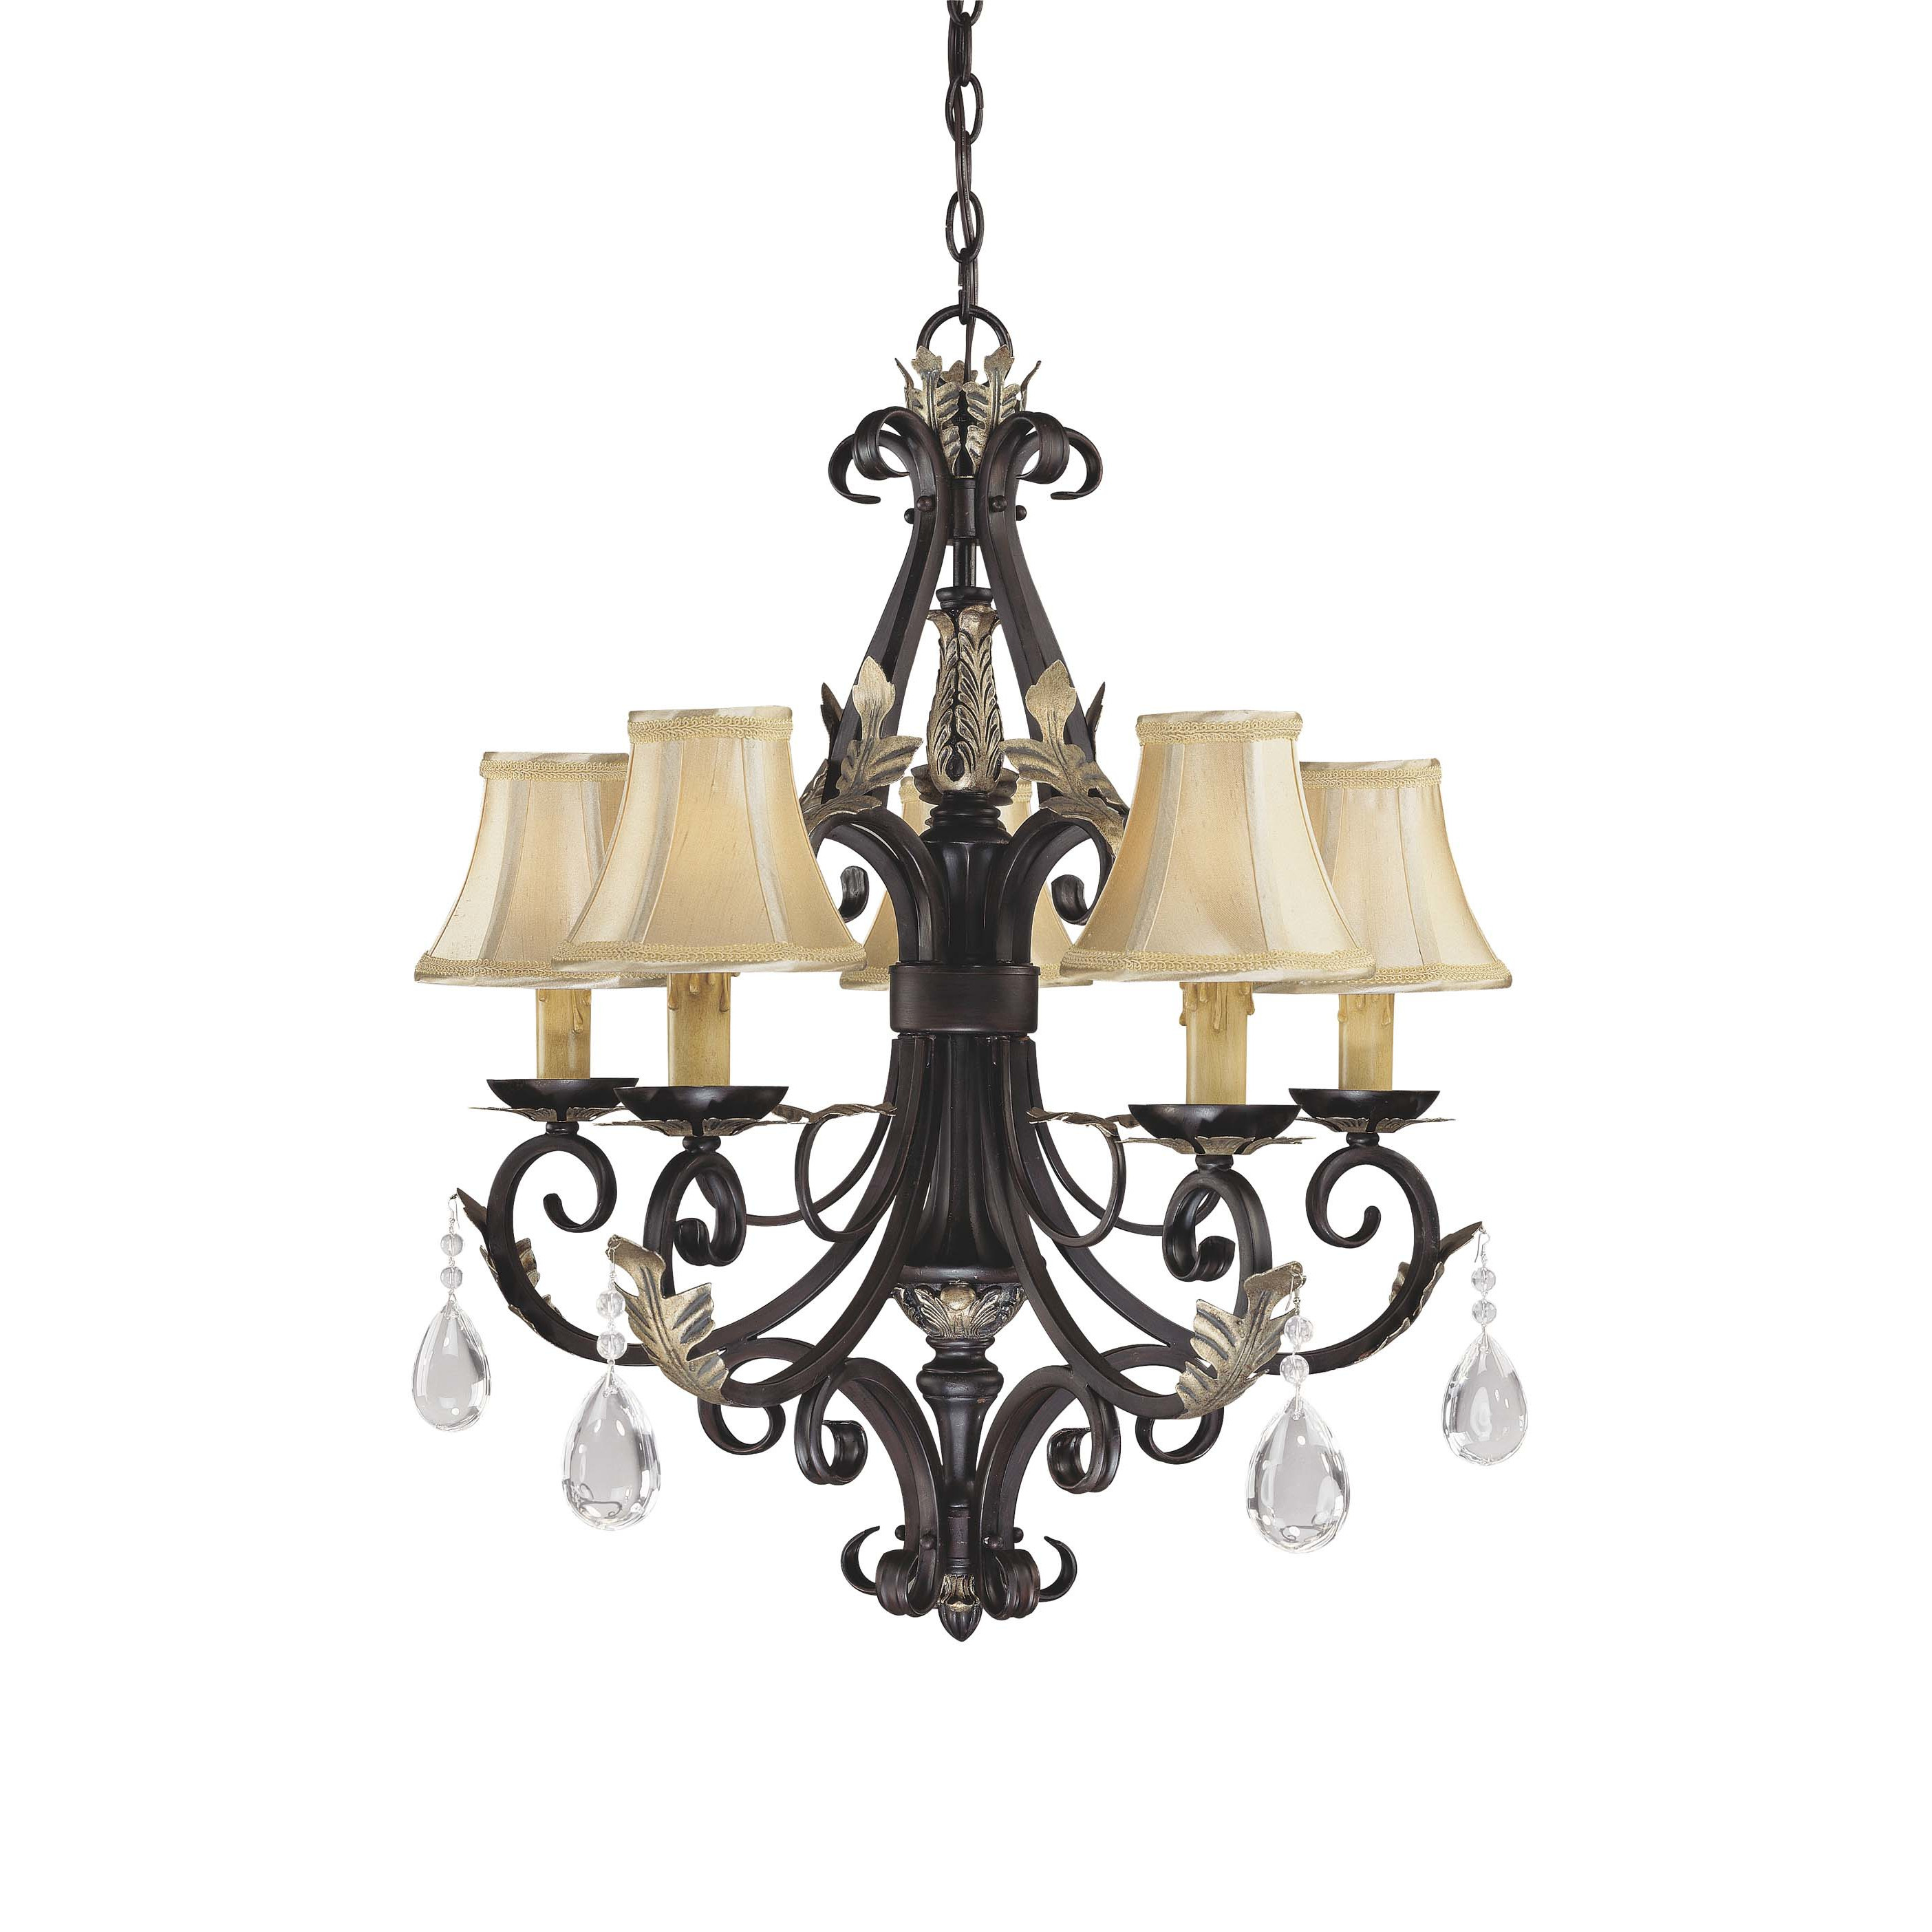 Best ideas about Minka Lavery Lighting . Save or Pin Minka Lavery Bellasera 5 Light Chandelier & Reviews Now.